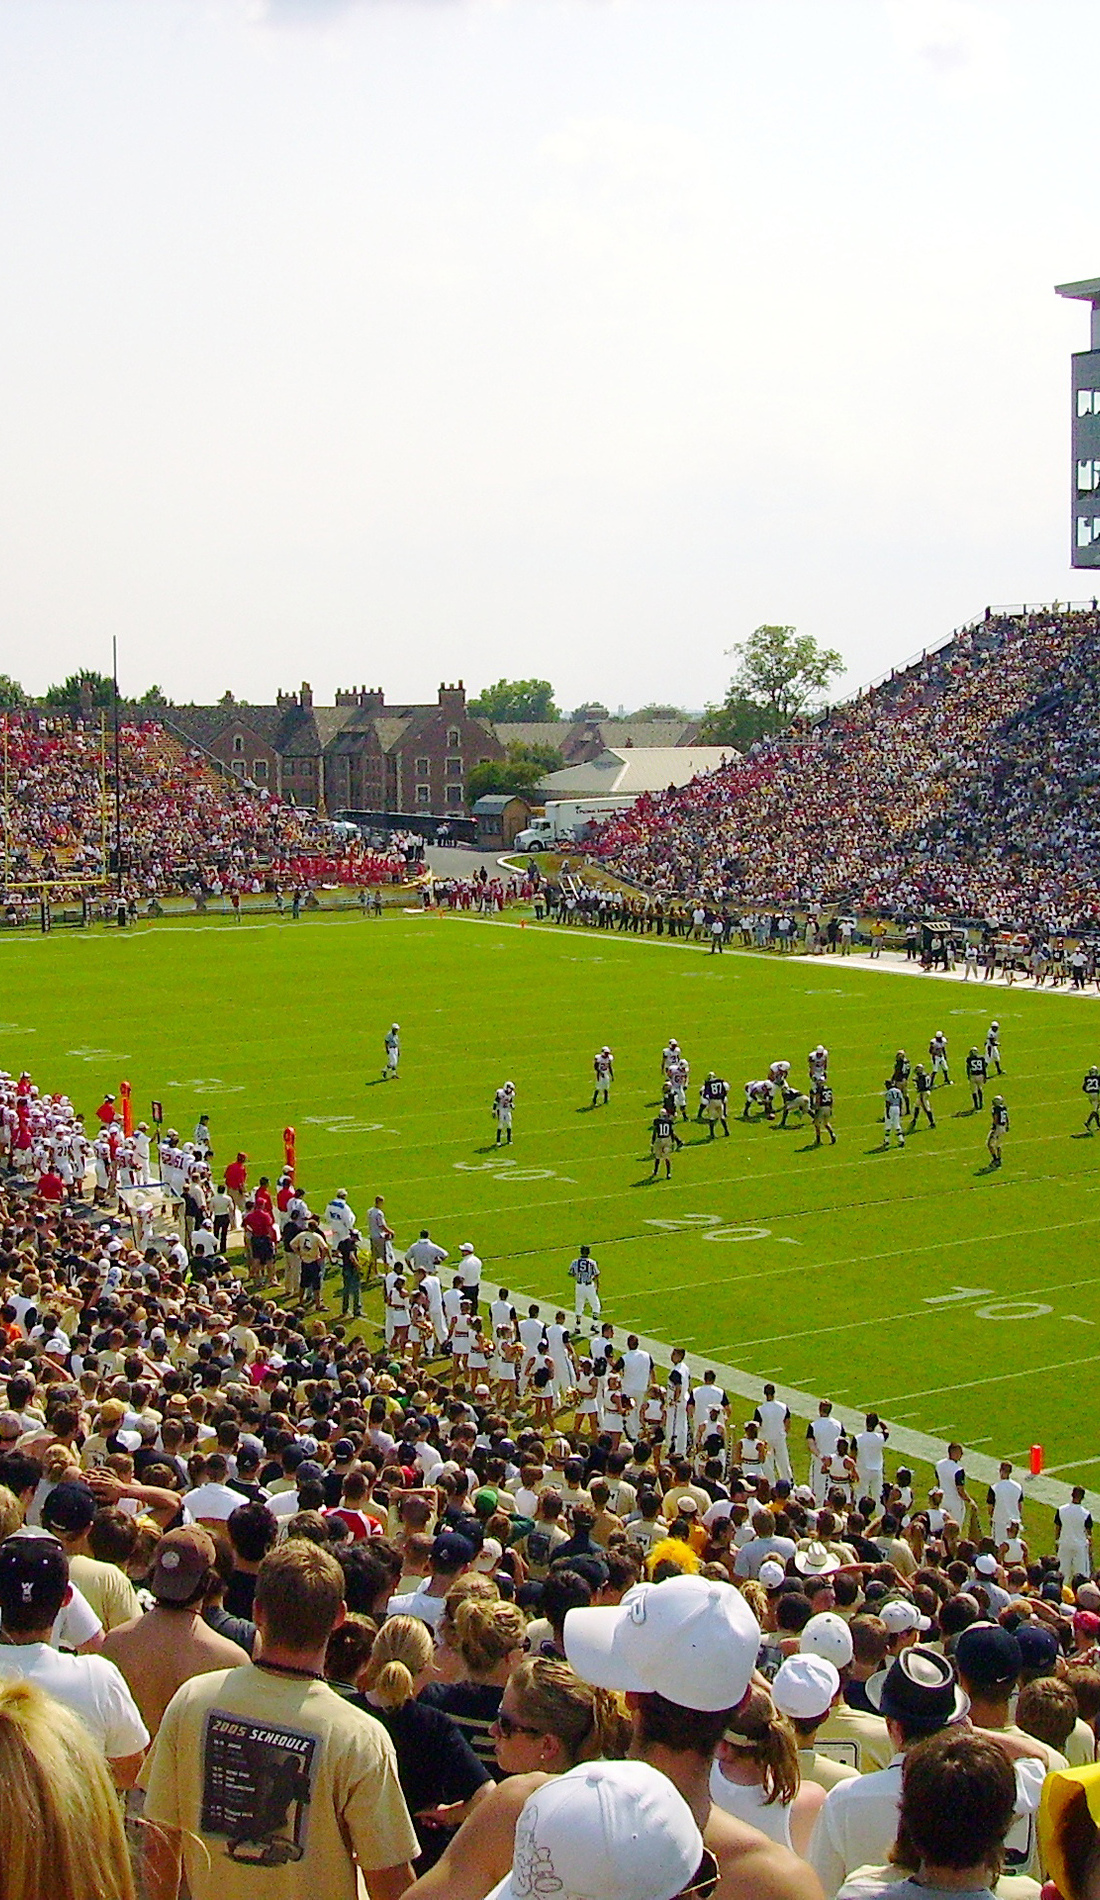 A Purdue Boilermakers Football live event